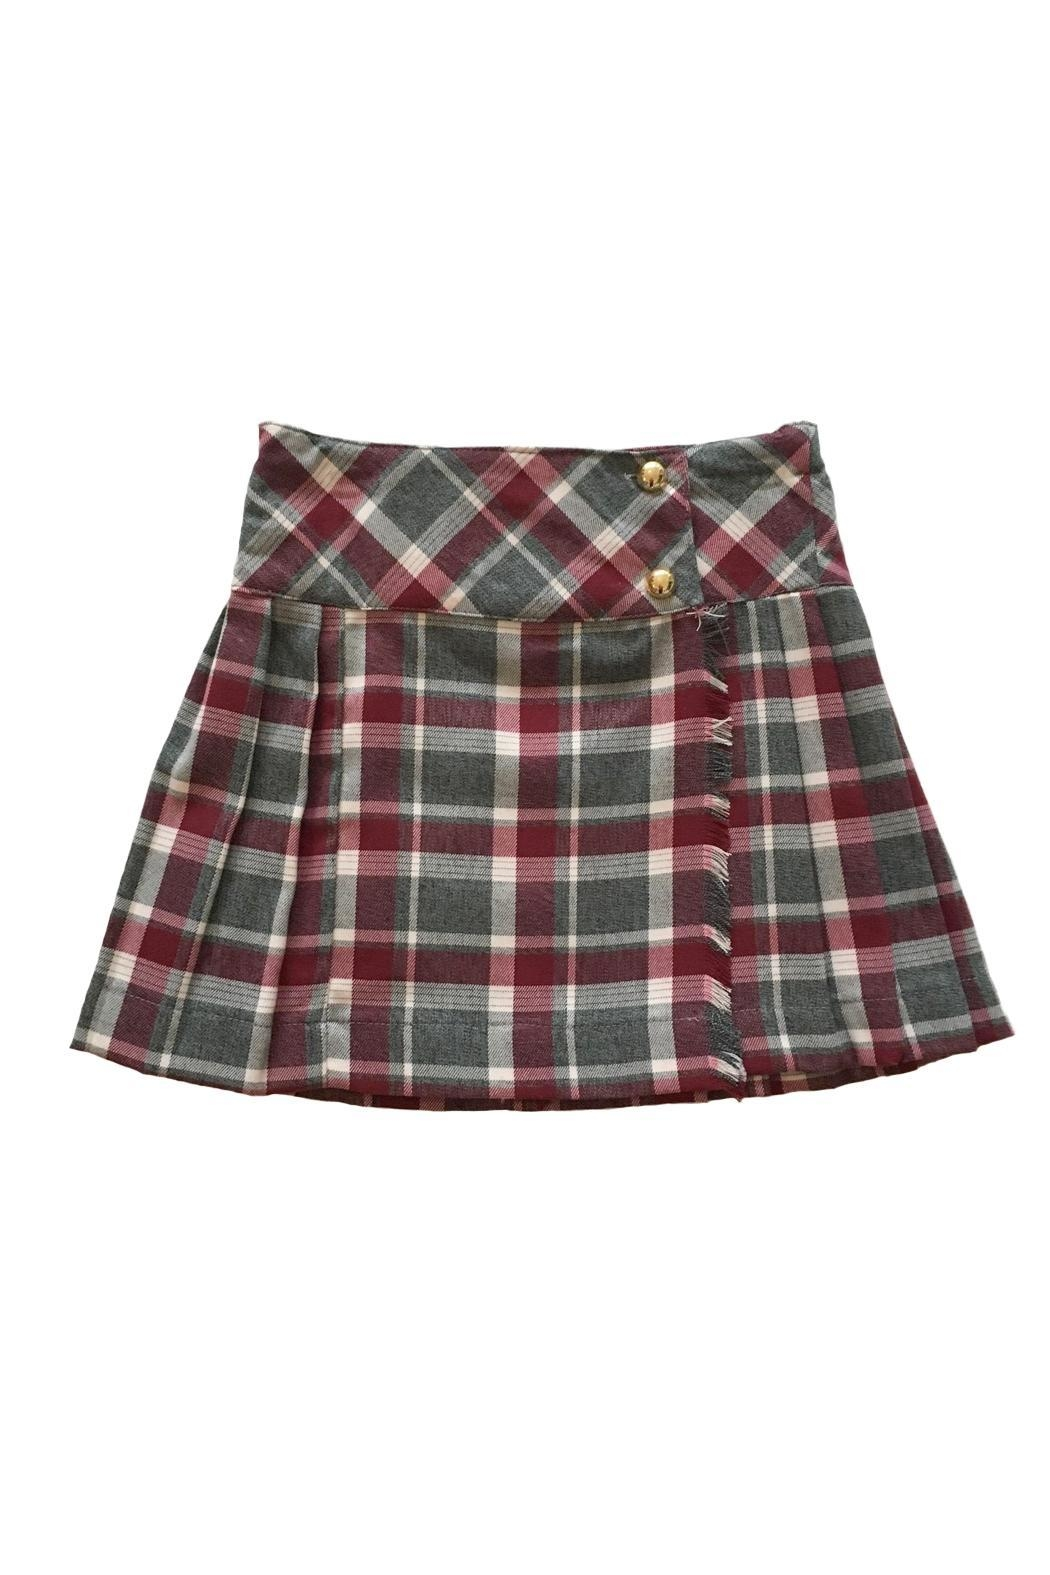 Malvi & Co. Grey Bordeaux Kilt. - Main Image